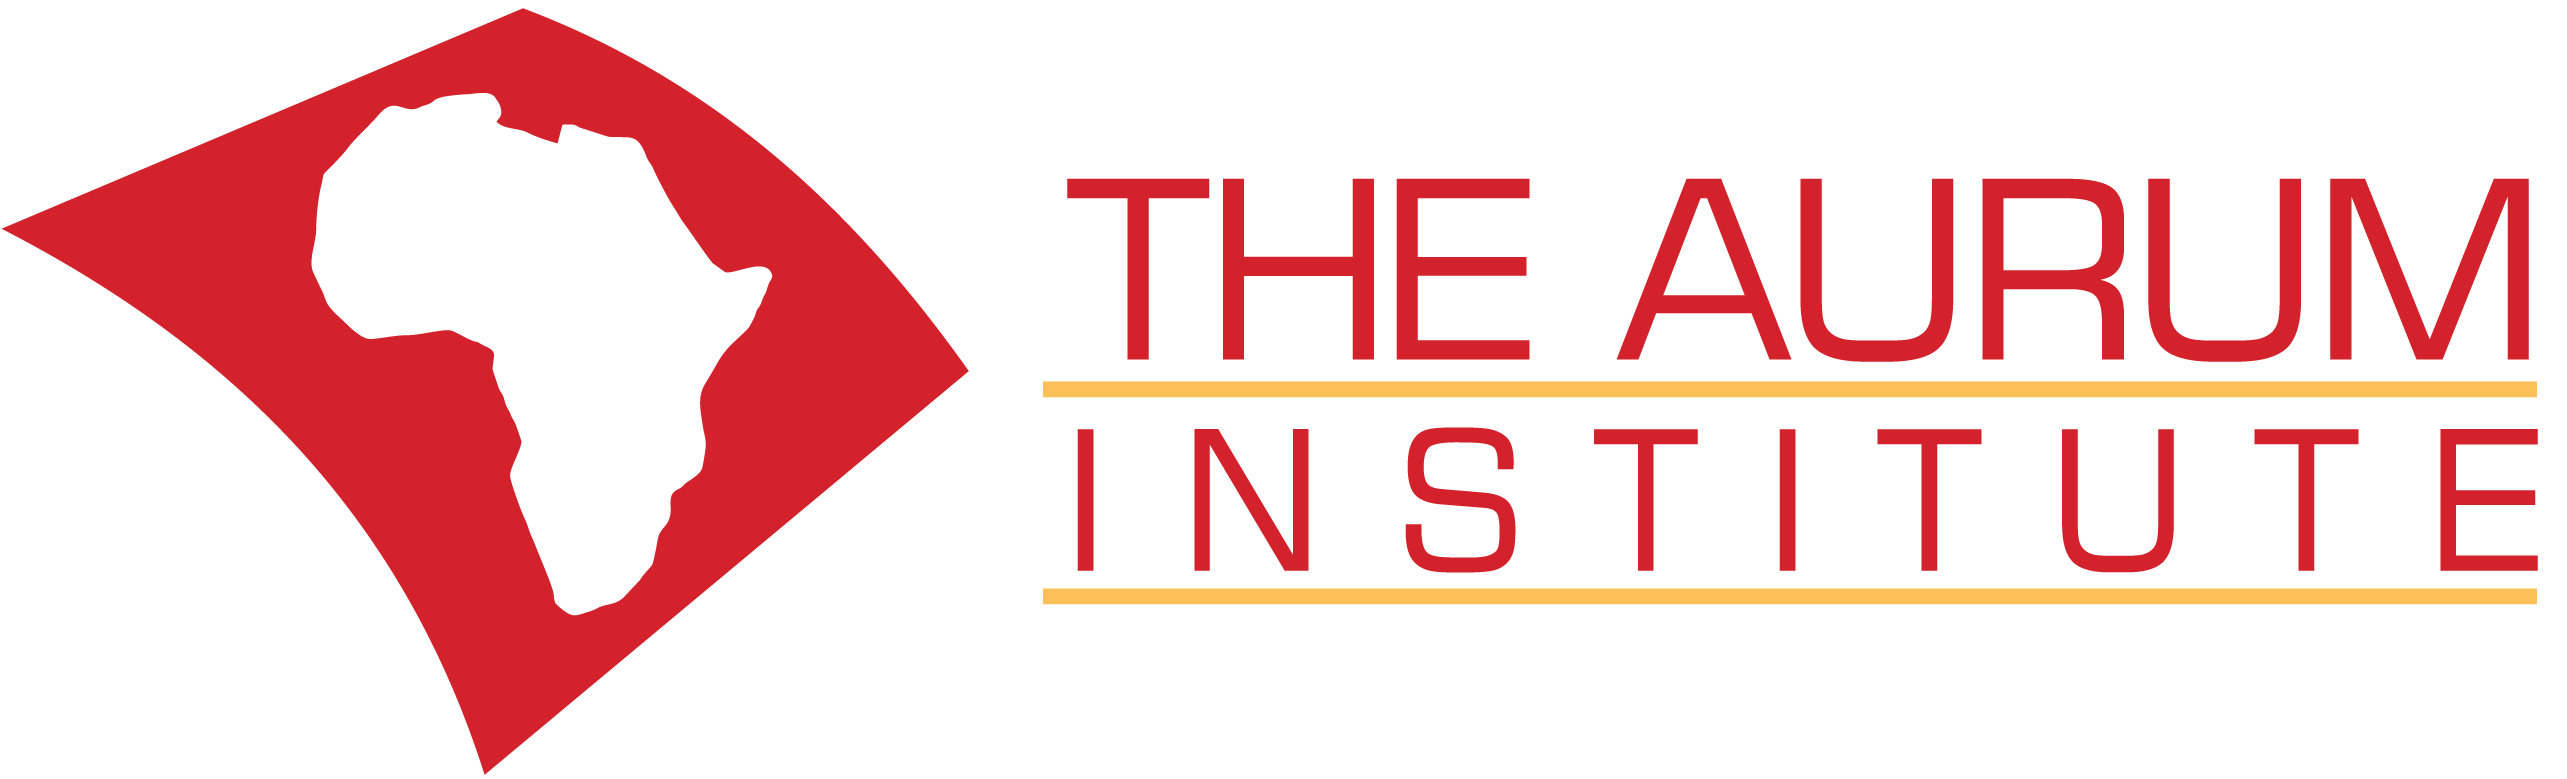 The Aurum Institute